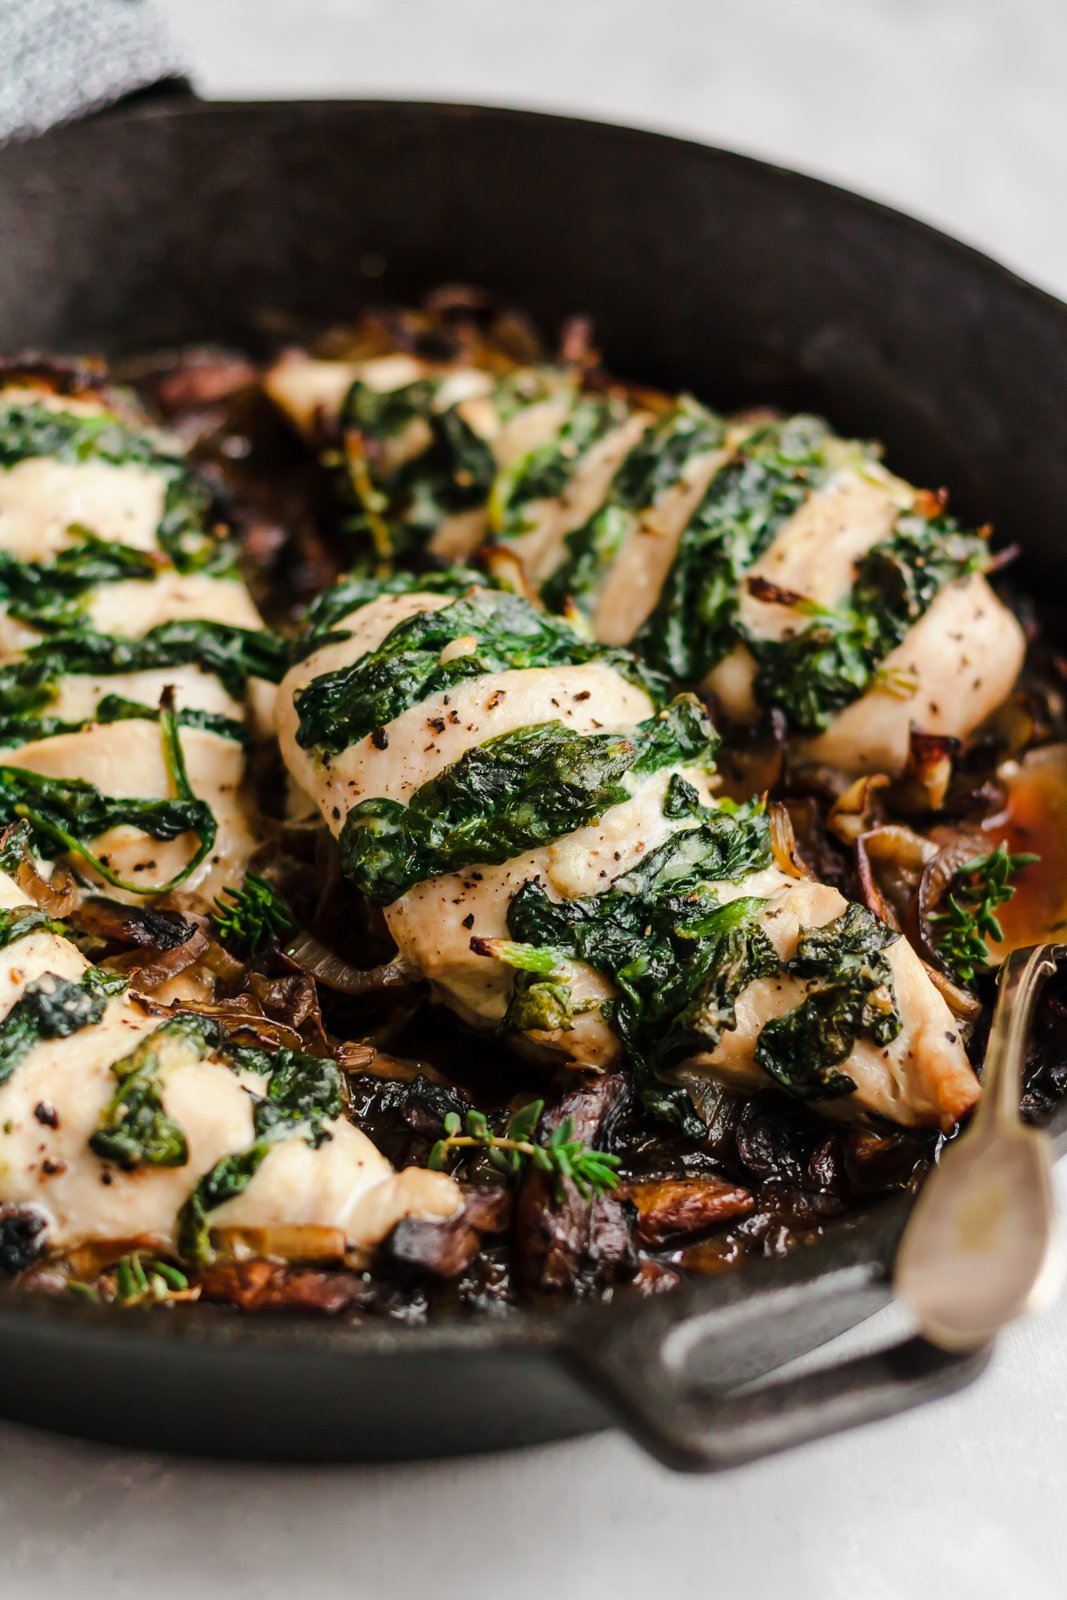 spinach and goat cheese stuffed chicken breast in a skillet